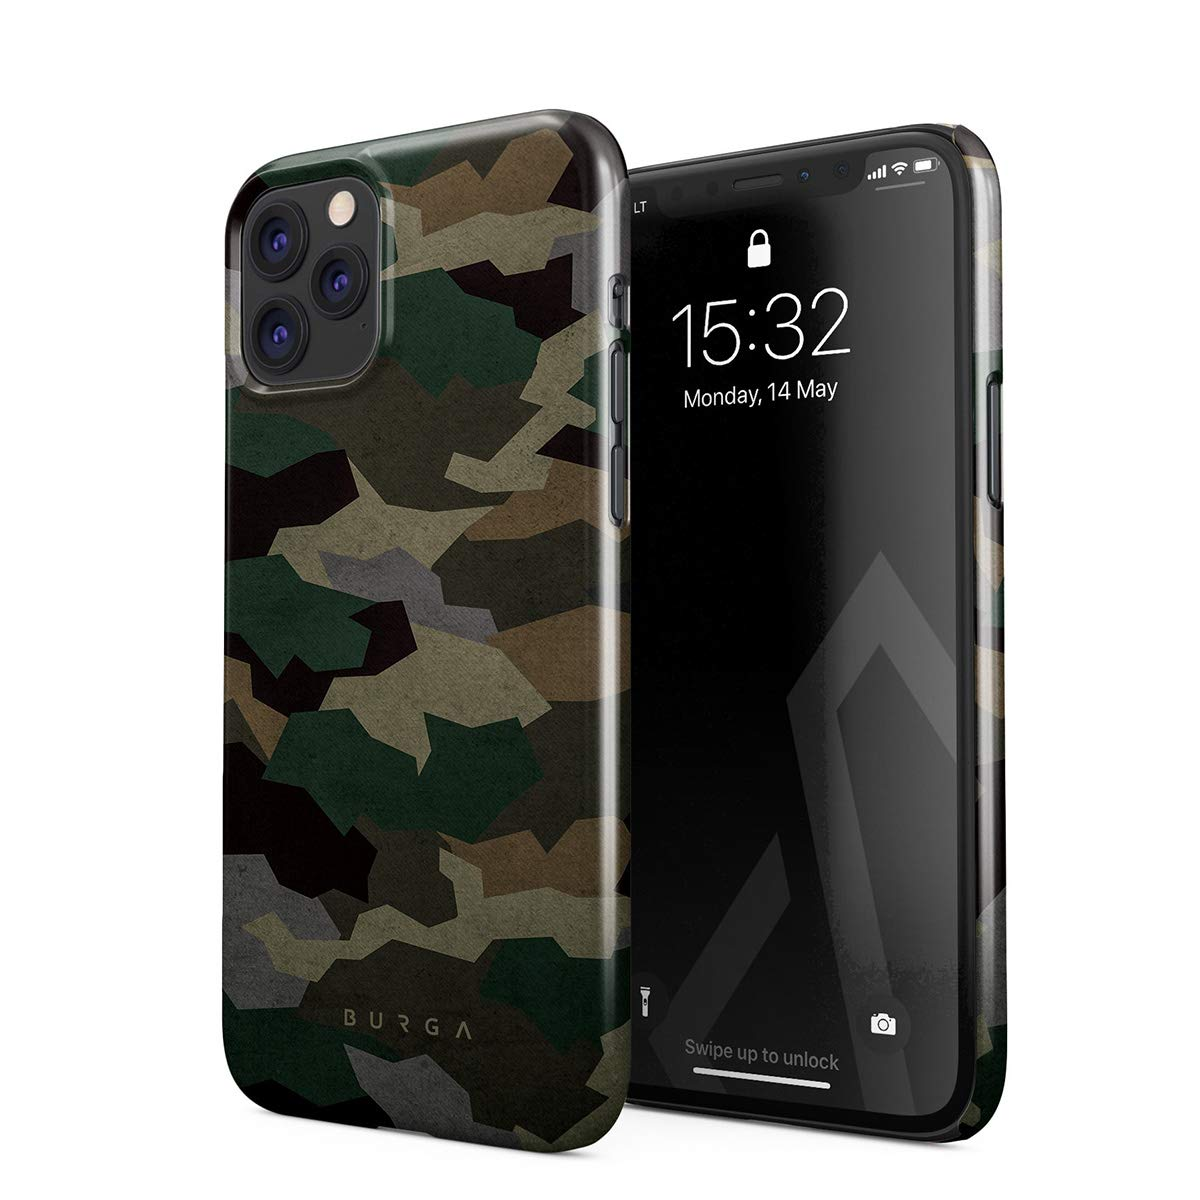 BURGA Phone Case Compatible with iPhone 11 PRO - Tropical Military Army Green Camo Camouflage Cute Case for Women Thin Design Durable Hard Plastic Protective Case